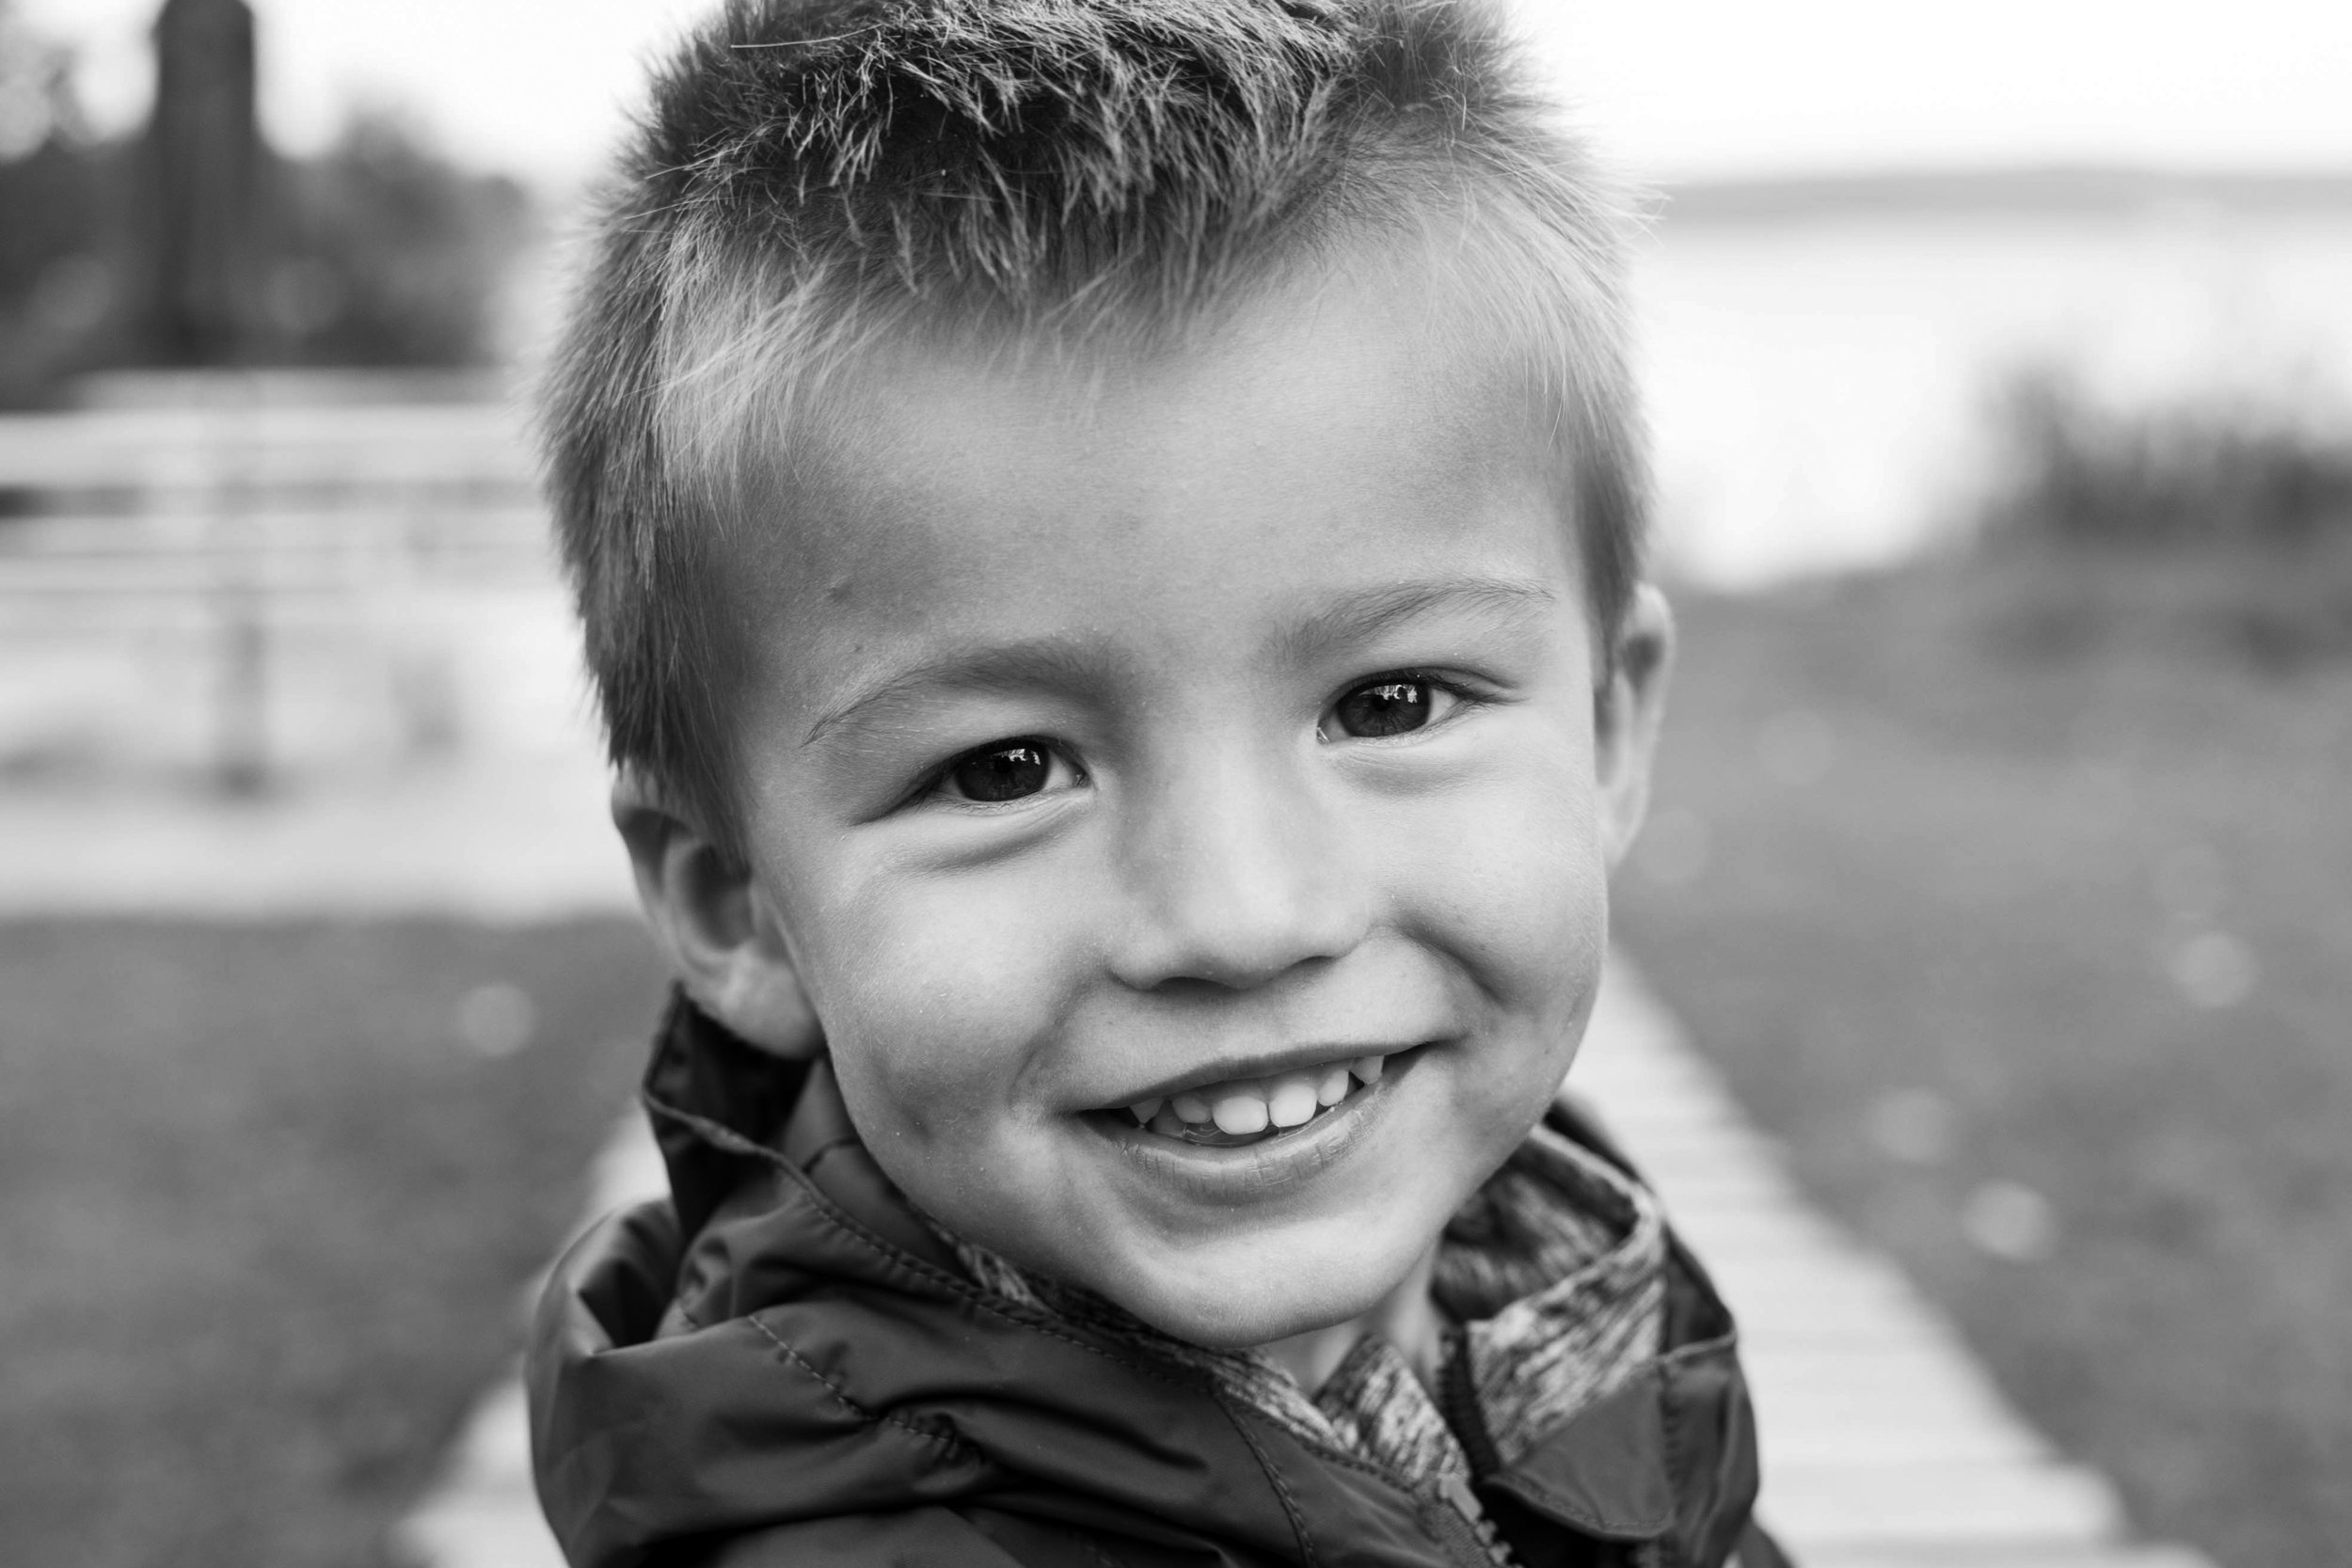 Toddler boy portrait, black and white photo